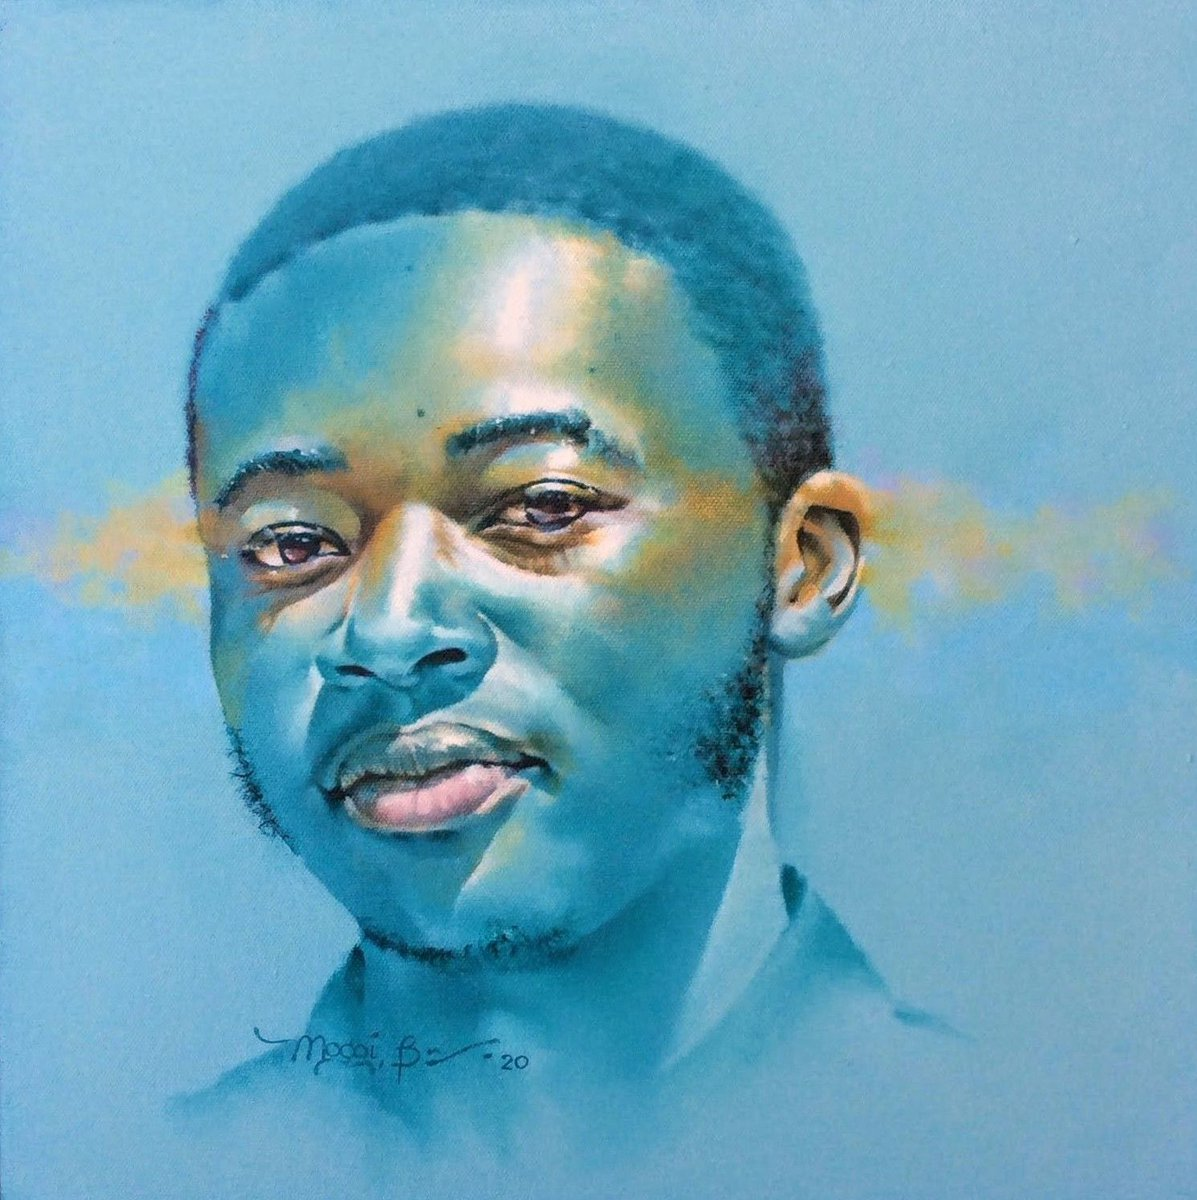 Still waiting for my beards to connect 😆  Asante sana @brian_mogoi for sharing your amazing gift through this painting 🙏🏿 Check out more of his work on IG https://t.co/t6SguBP53g   #kenyanart #artlover #oilpaintings #oiloncanvas #portrait #kenyanartist #buykenyan #brianmogoi https://t.co/cPGPtTryub